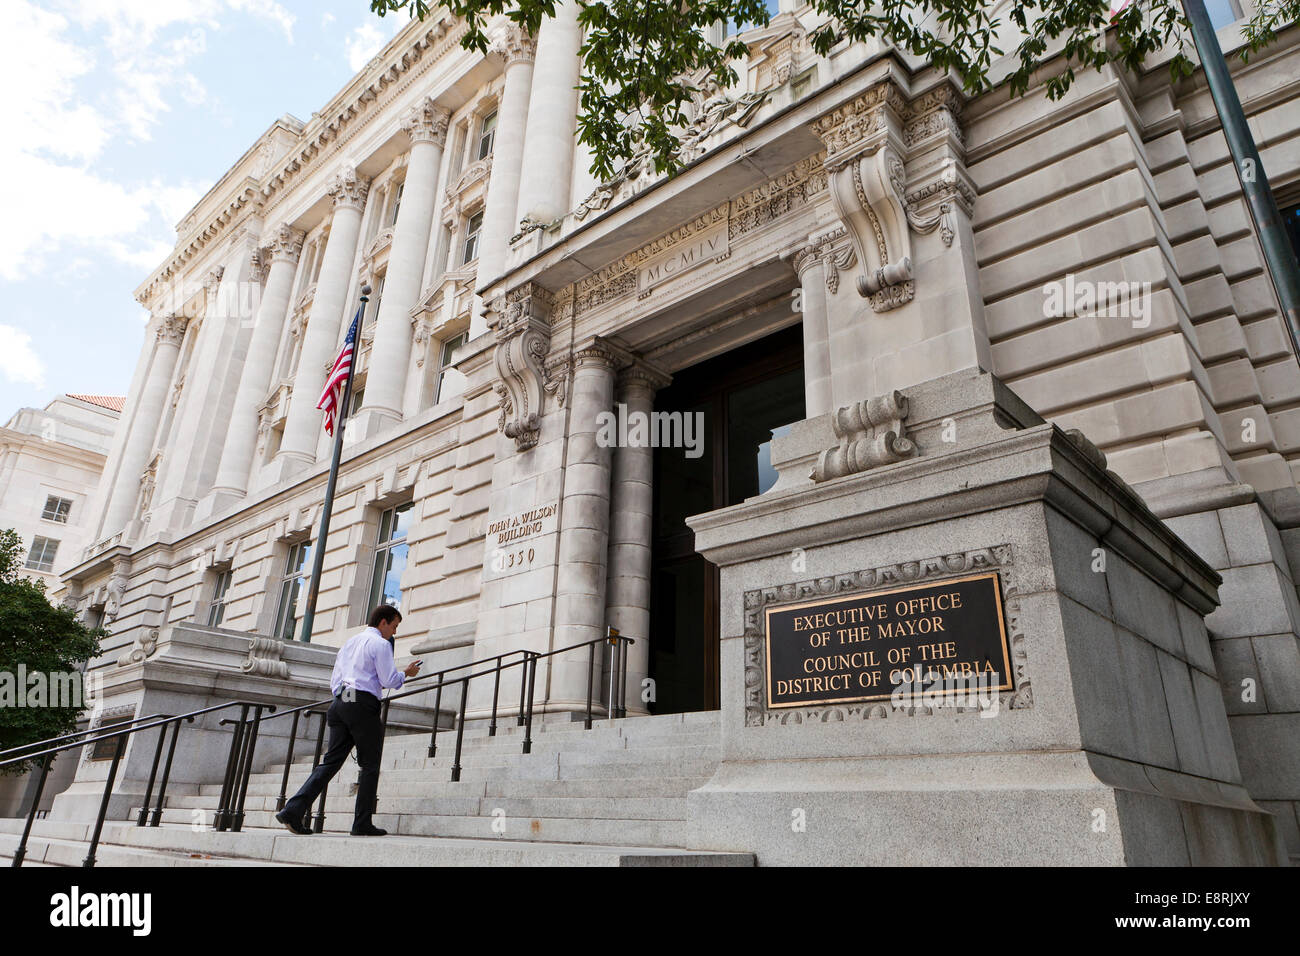 John A. Wilson building - Washington, DC USA - Stock Image